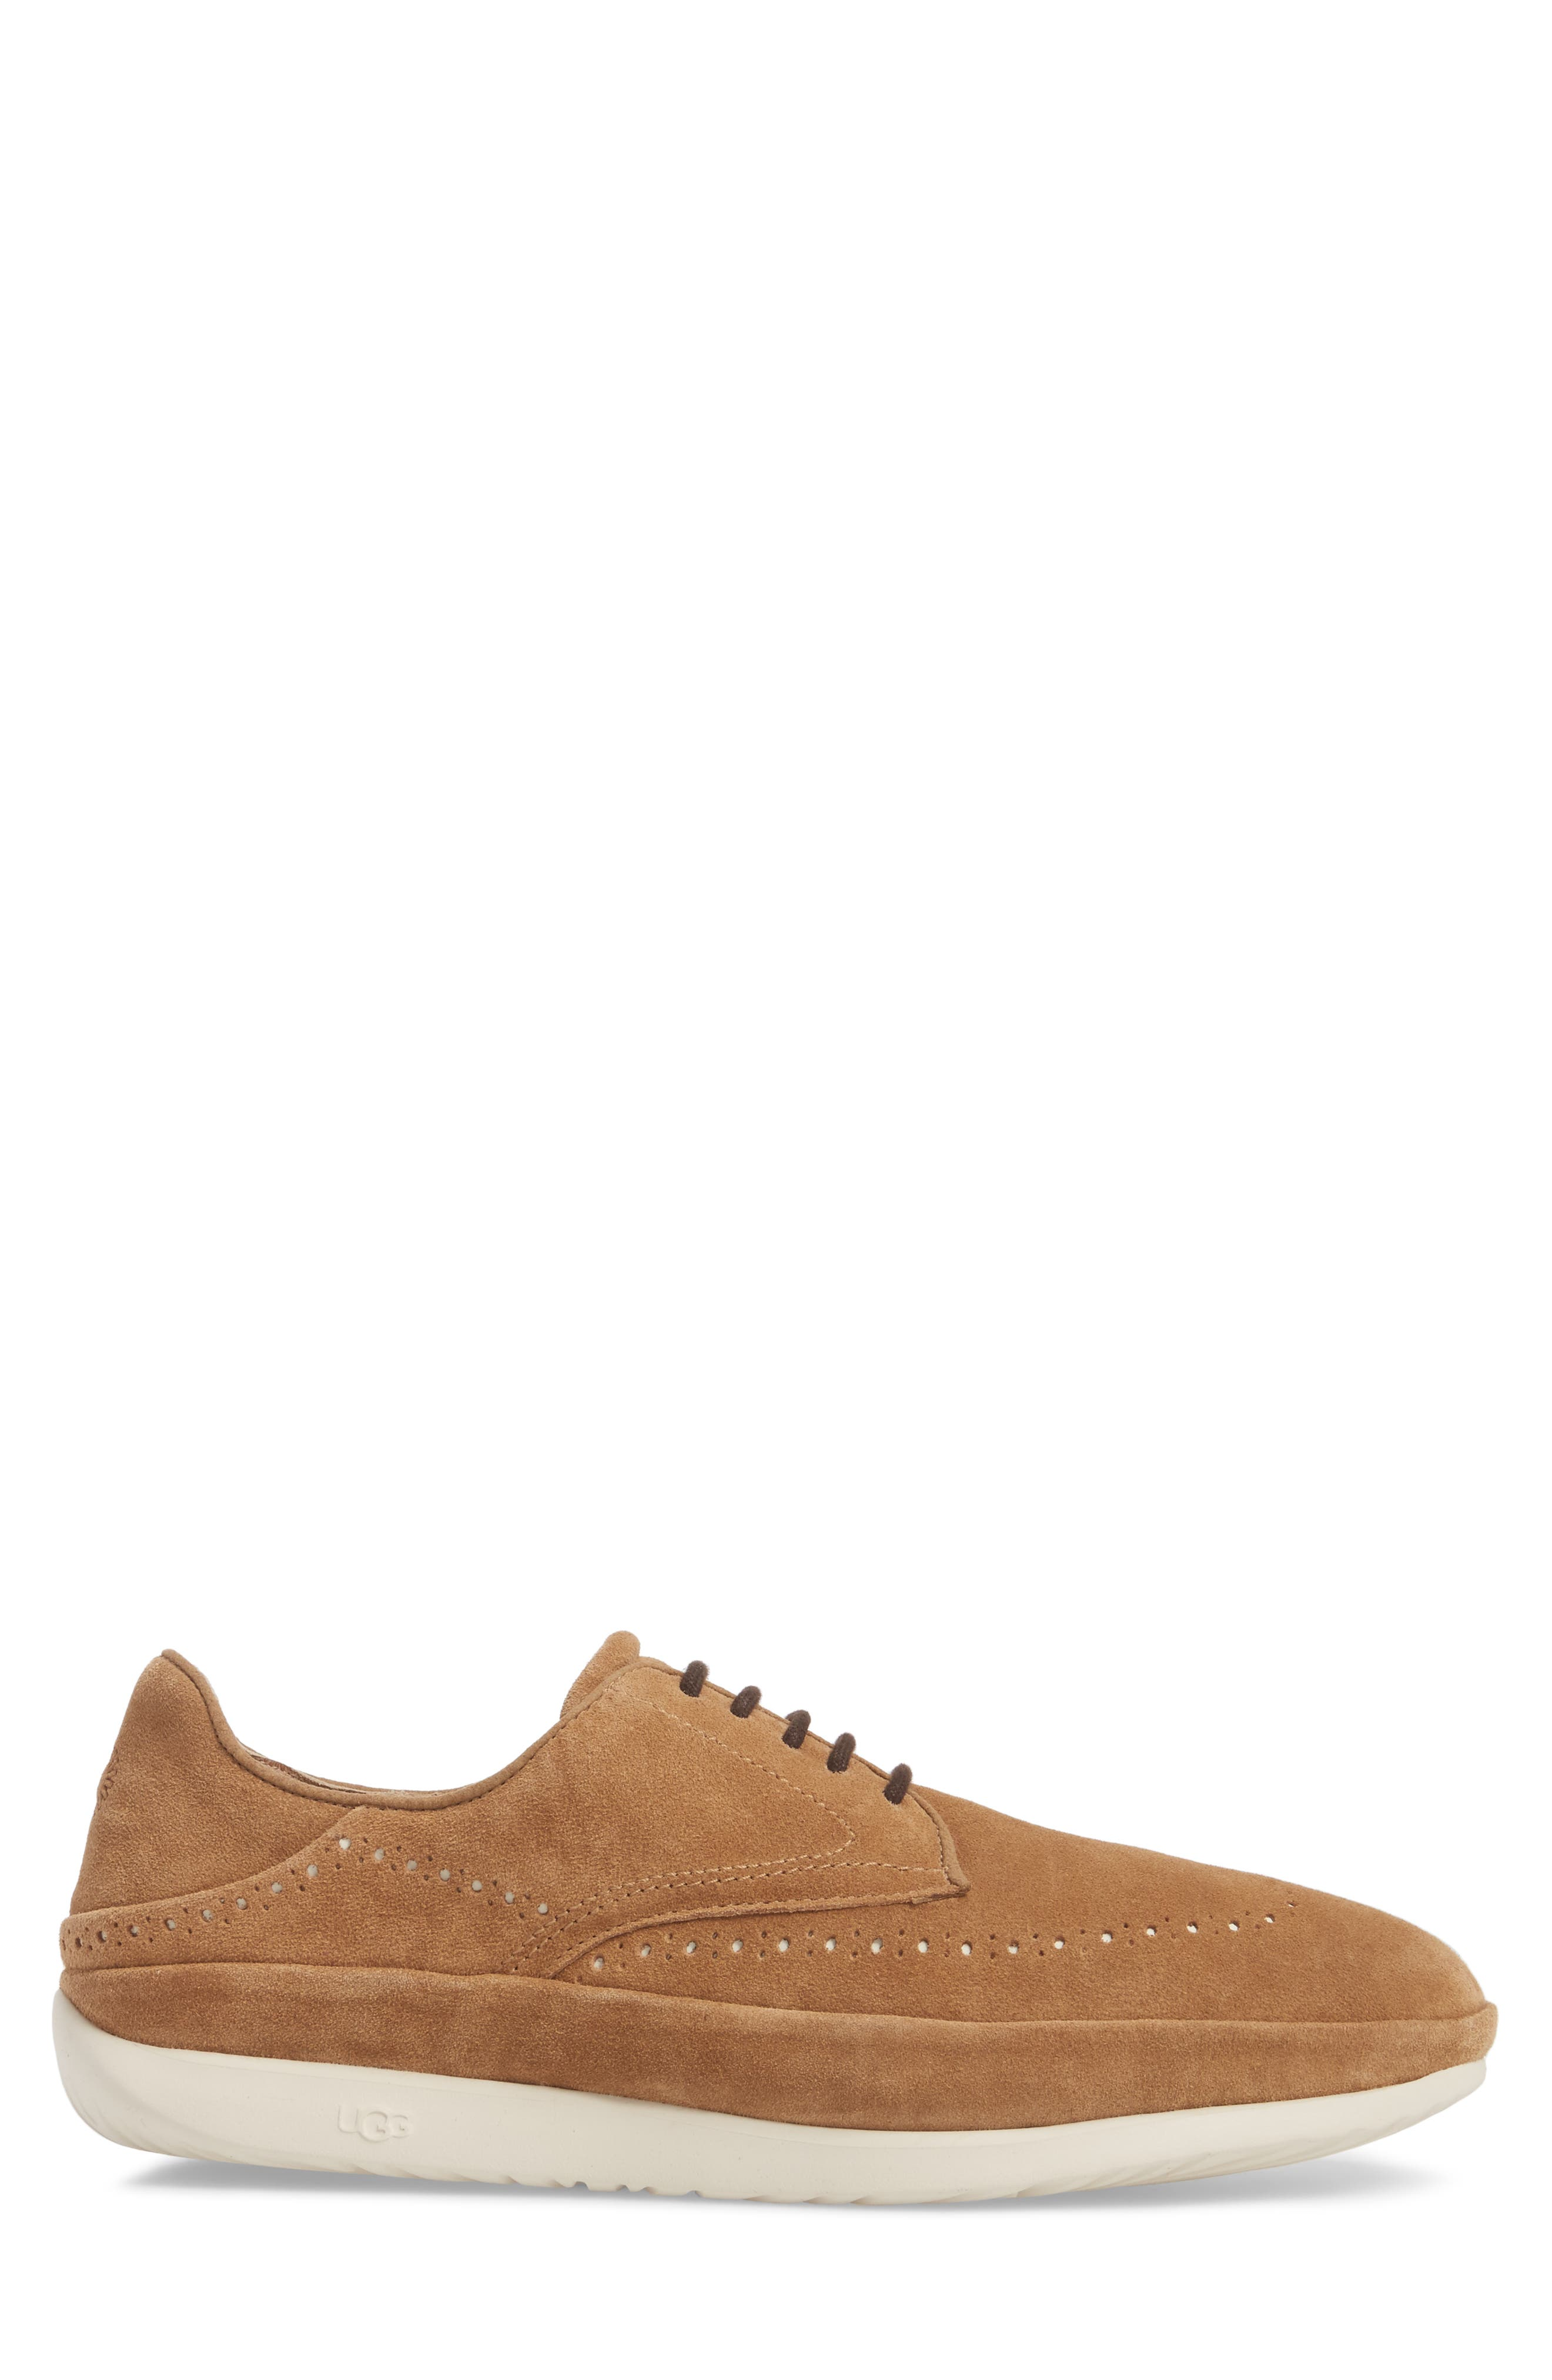 Cali Collapsible Wingtip Derby,                             Alternate thumbnail 3, color,                             CHESTNUT LEATHER